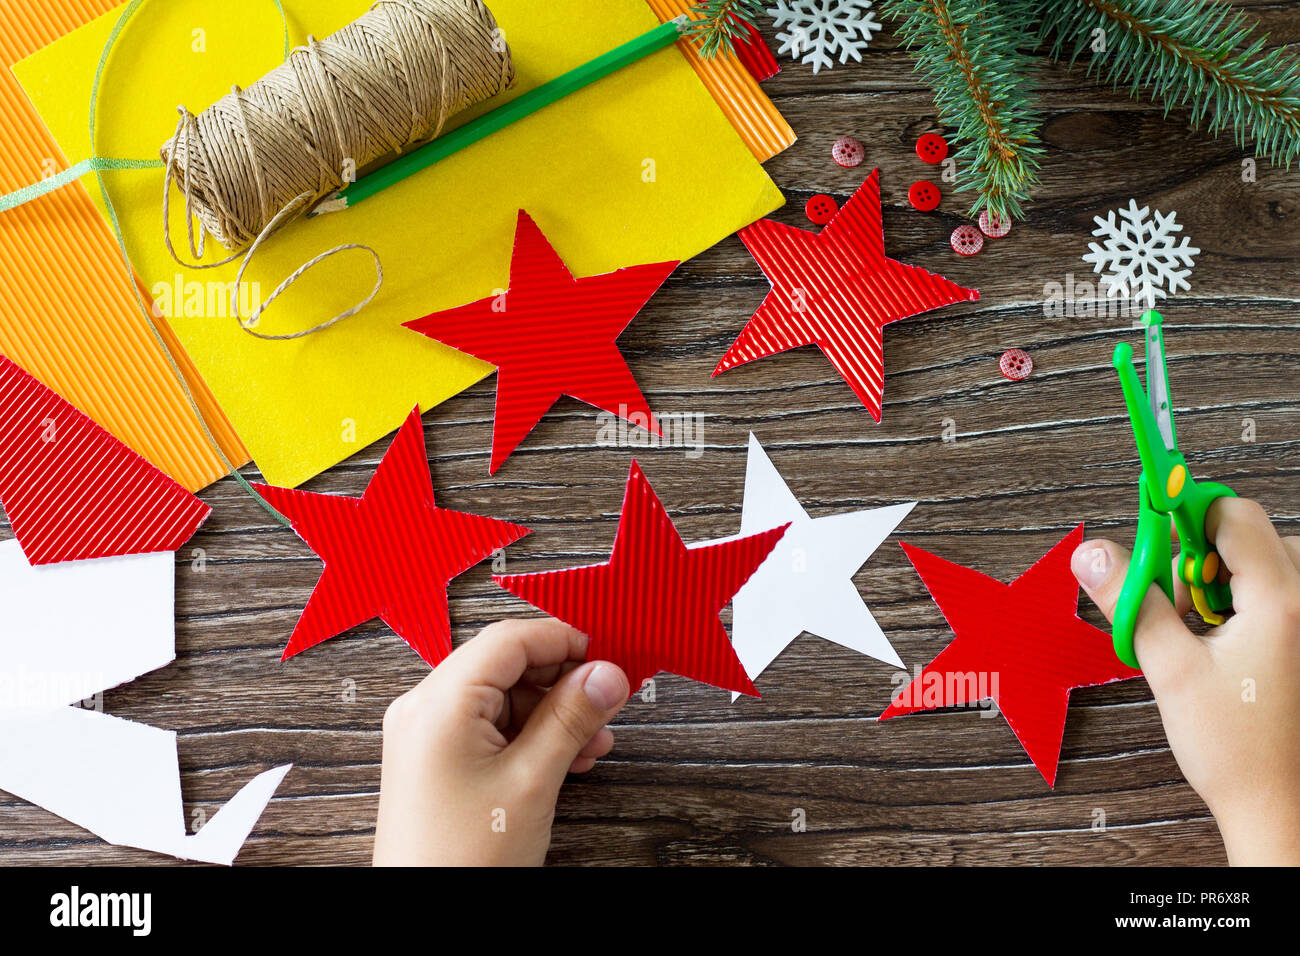 Christmas Tree Toys Handmade.The Child Cuts Out The Details Christmas Tree Toys Star Gift